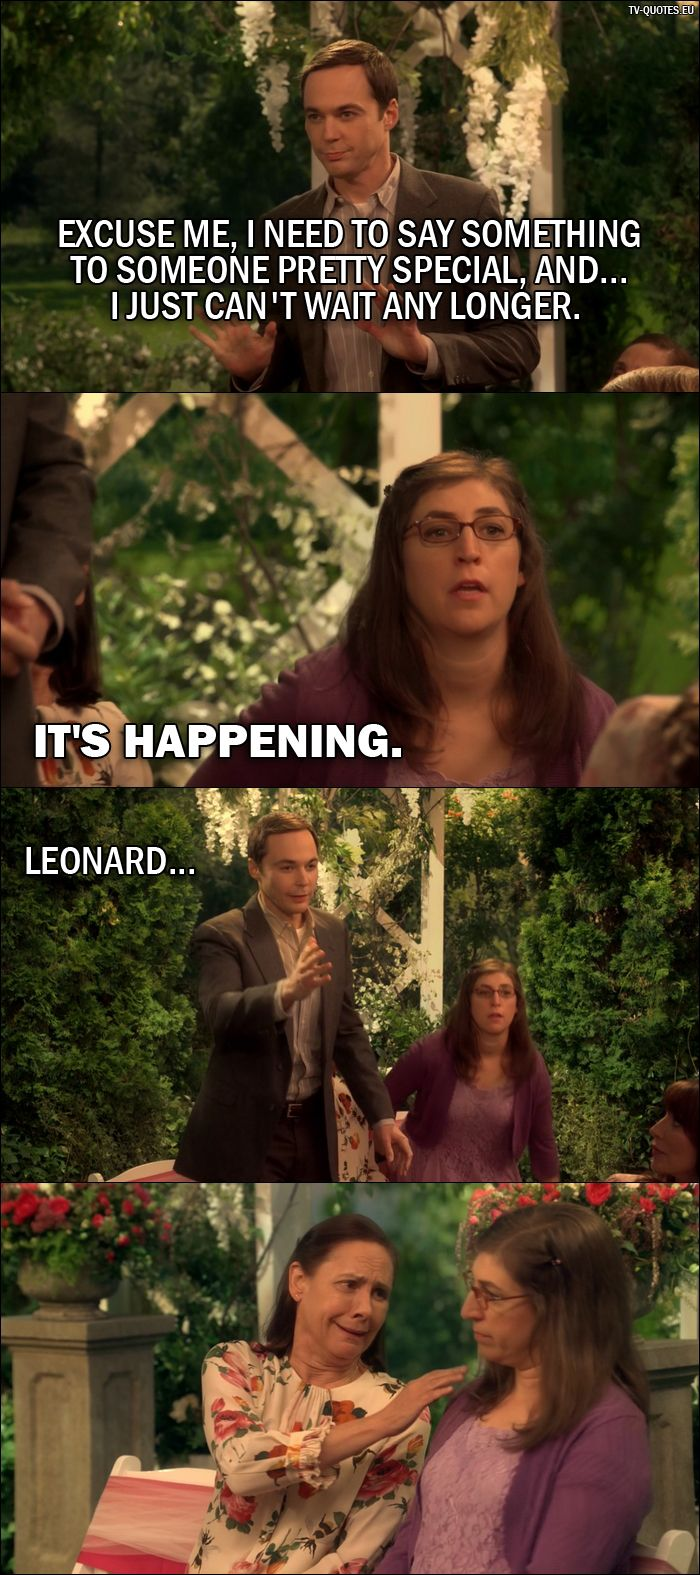 Quote from The Big Bang Theory 10x01: Sheldon Cooper: Excuse me, I need to say something to someone pretty special, and... I just can't wait any longer. Amy Farrah Fowler: It's happening. Sheldon Cooper: Leonard...